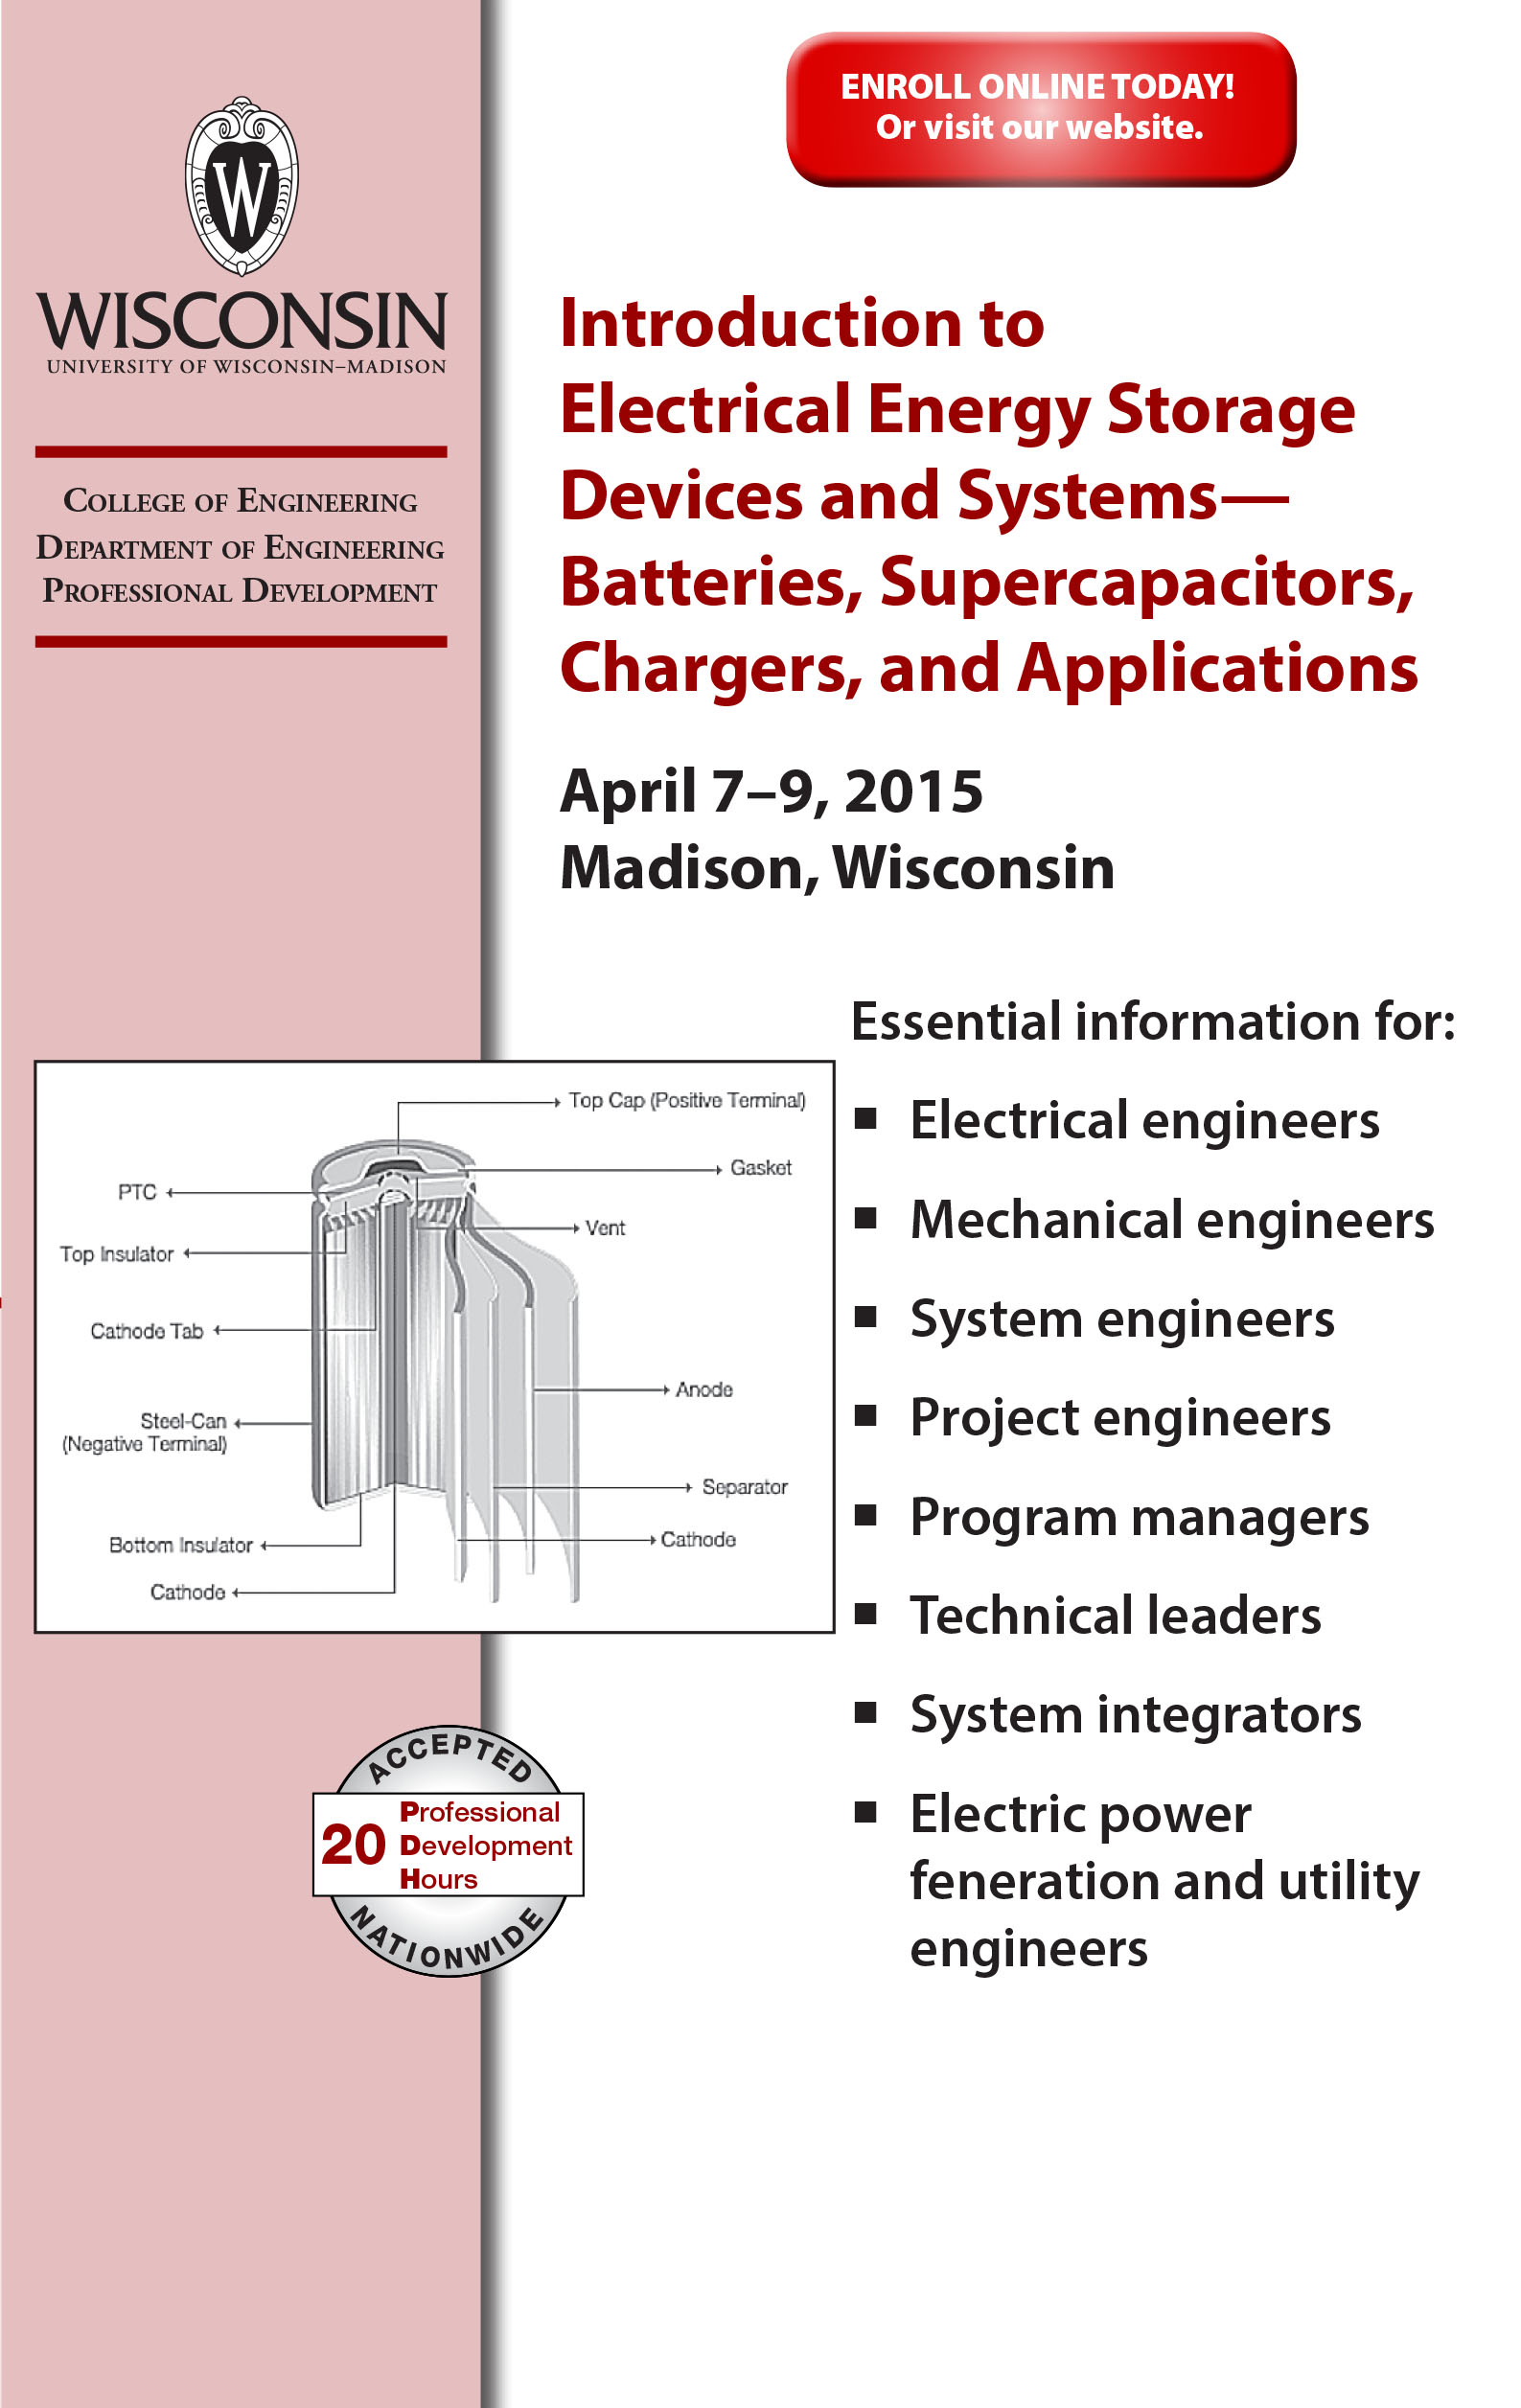 Introduction to Electrical Energy Storage Devices and Systems